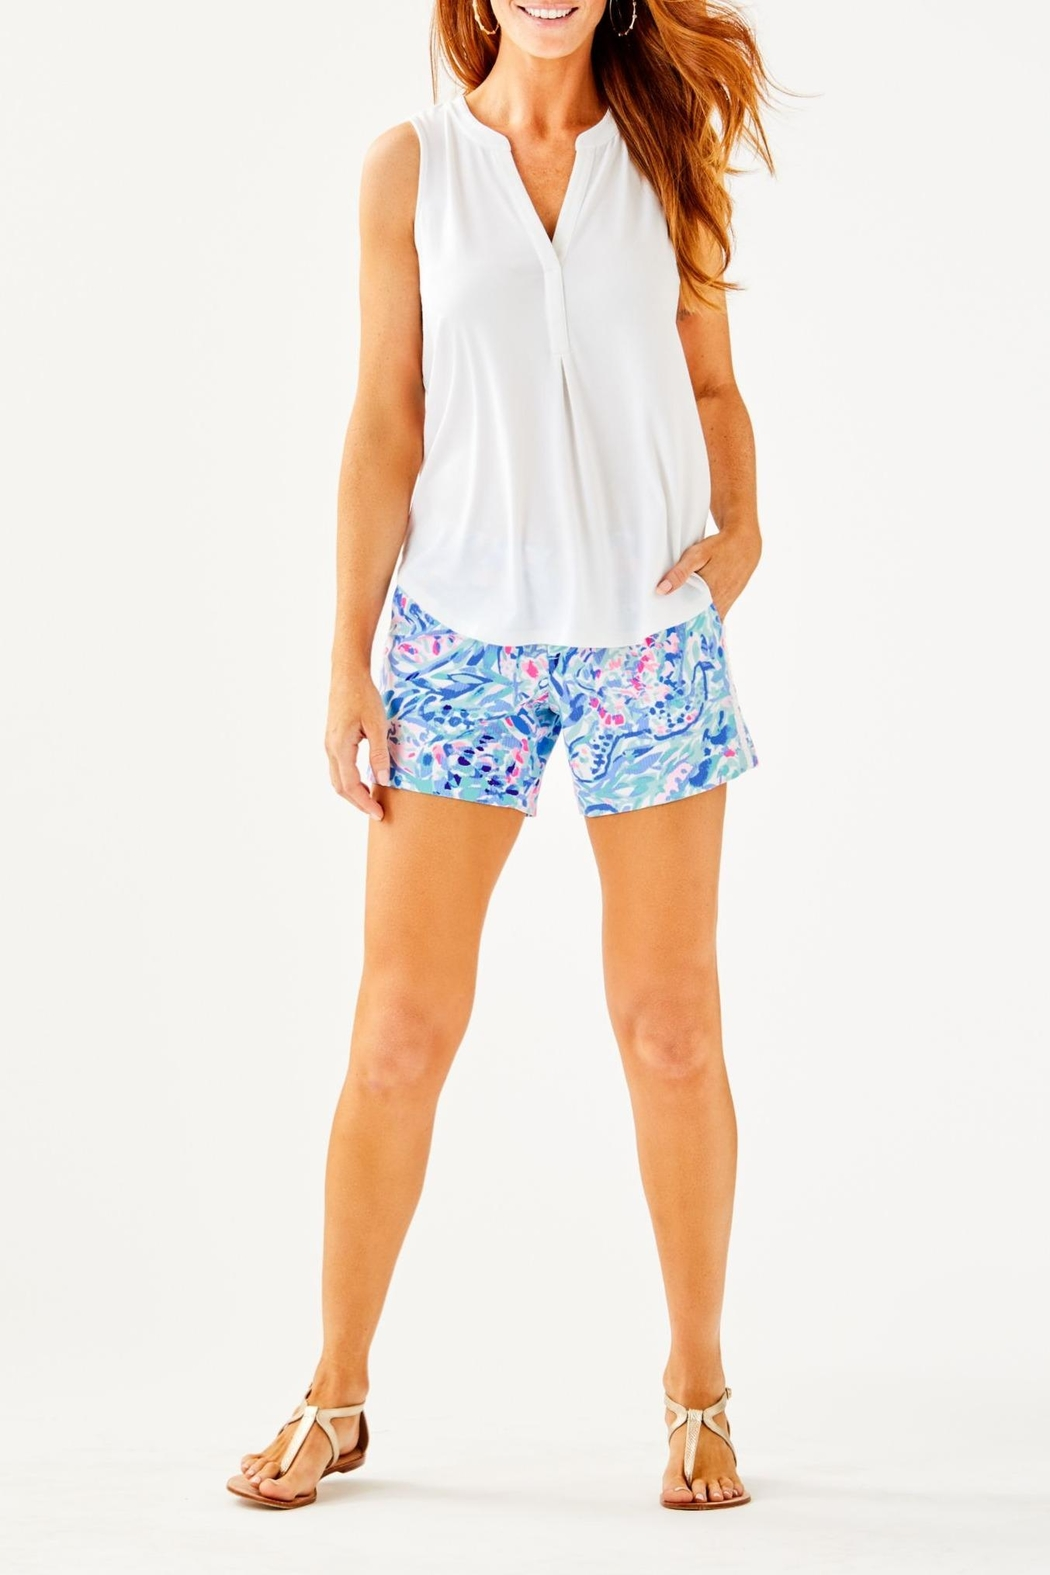 Lilly Pulitzer Raisa Top - Side Cropped Image